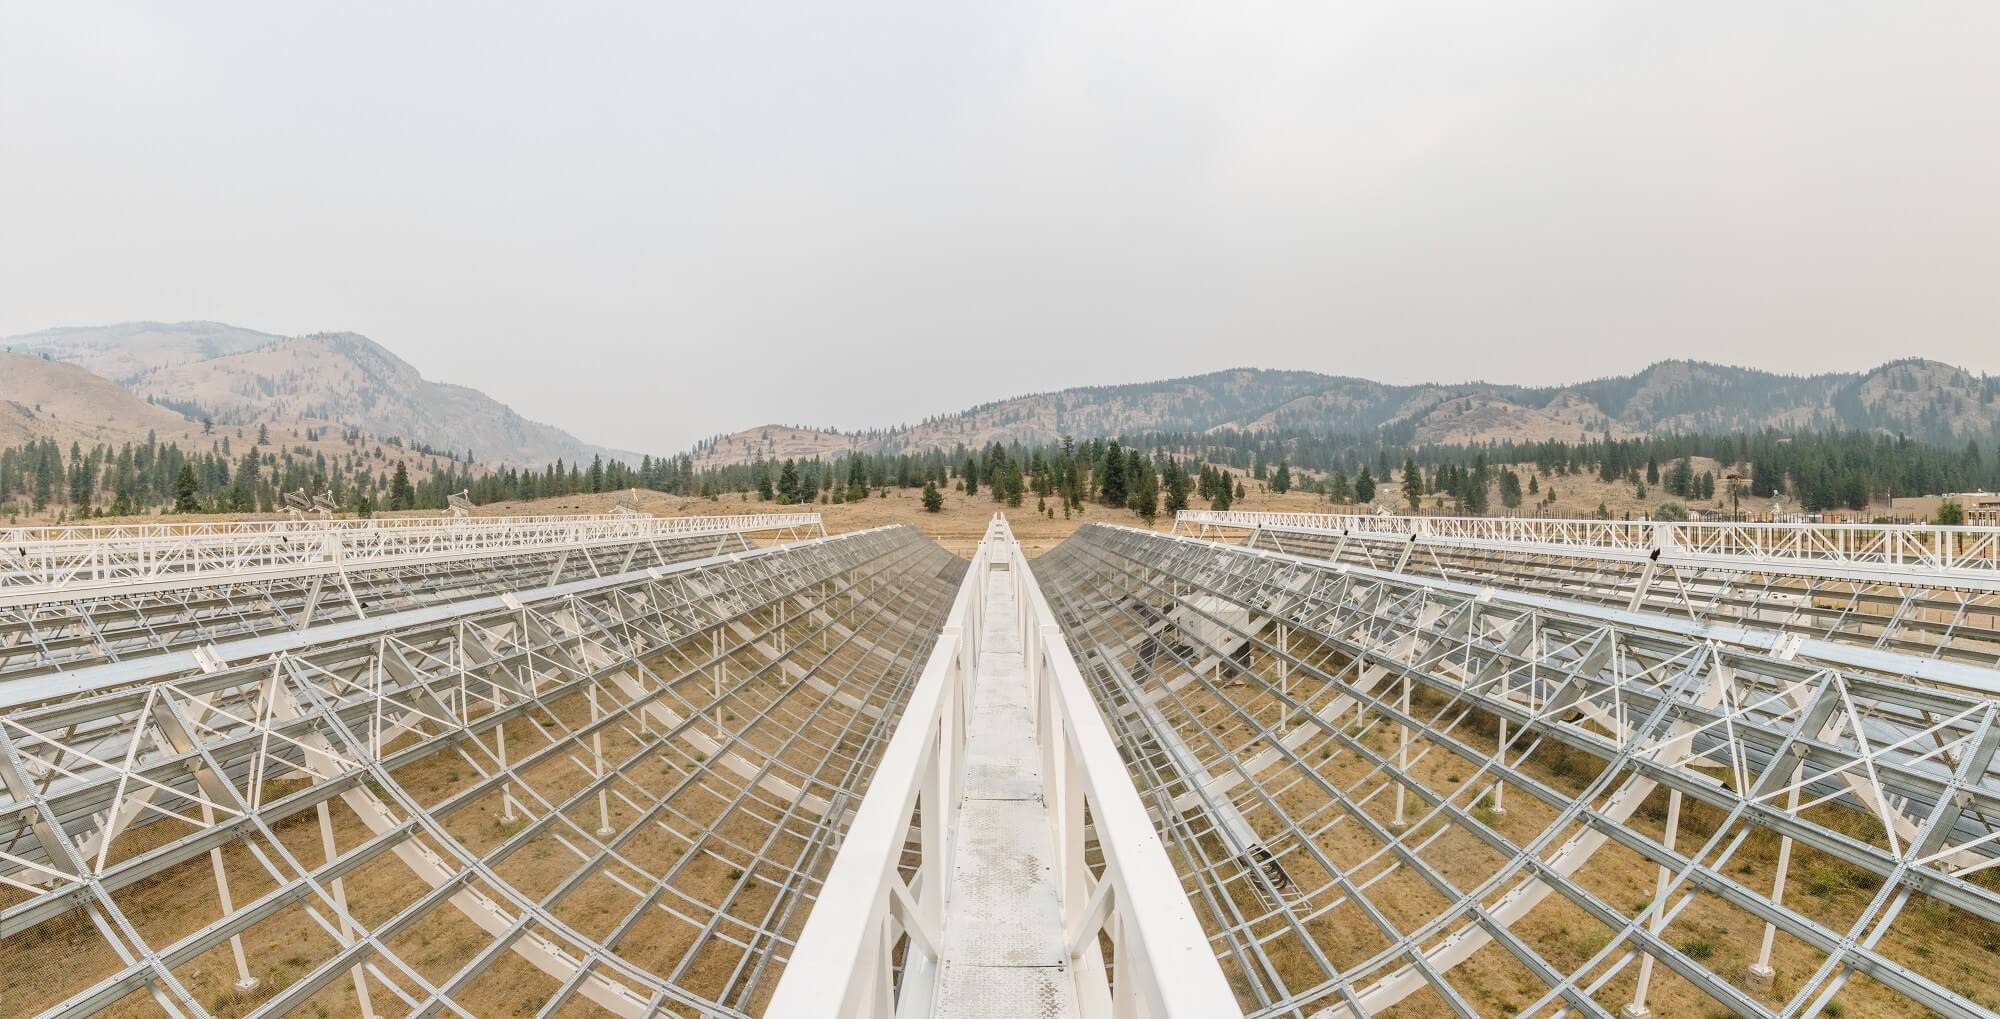 New repeating fast radio bursts discovered outside our galaxy, could it be aliens?